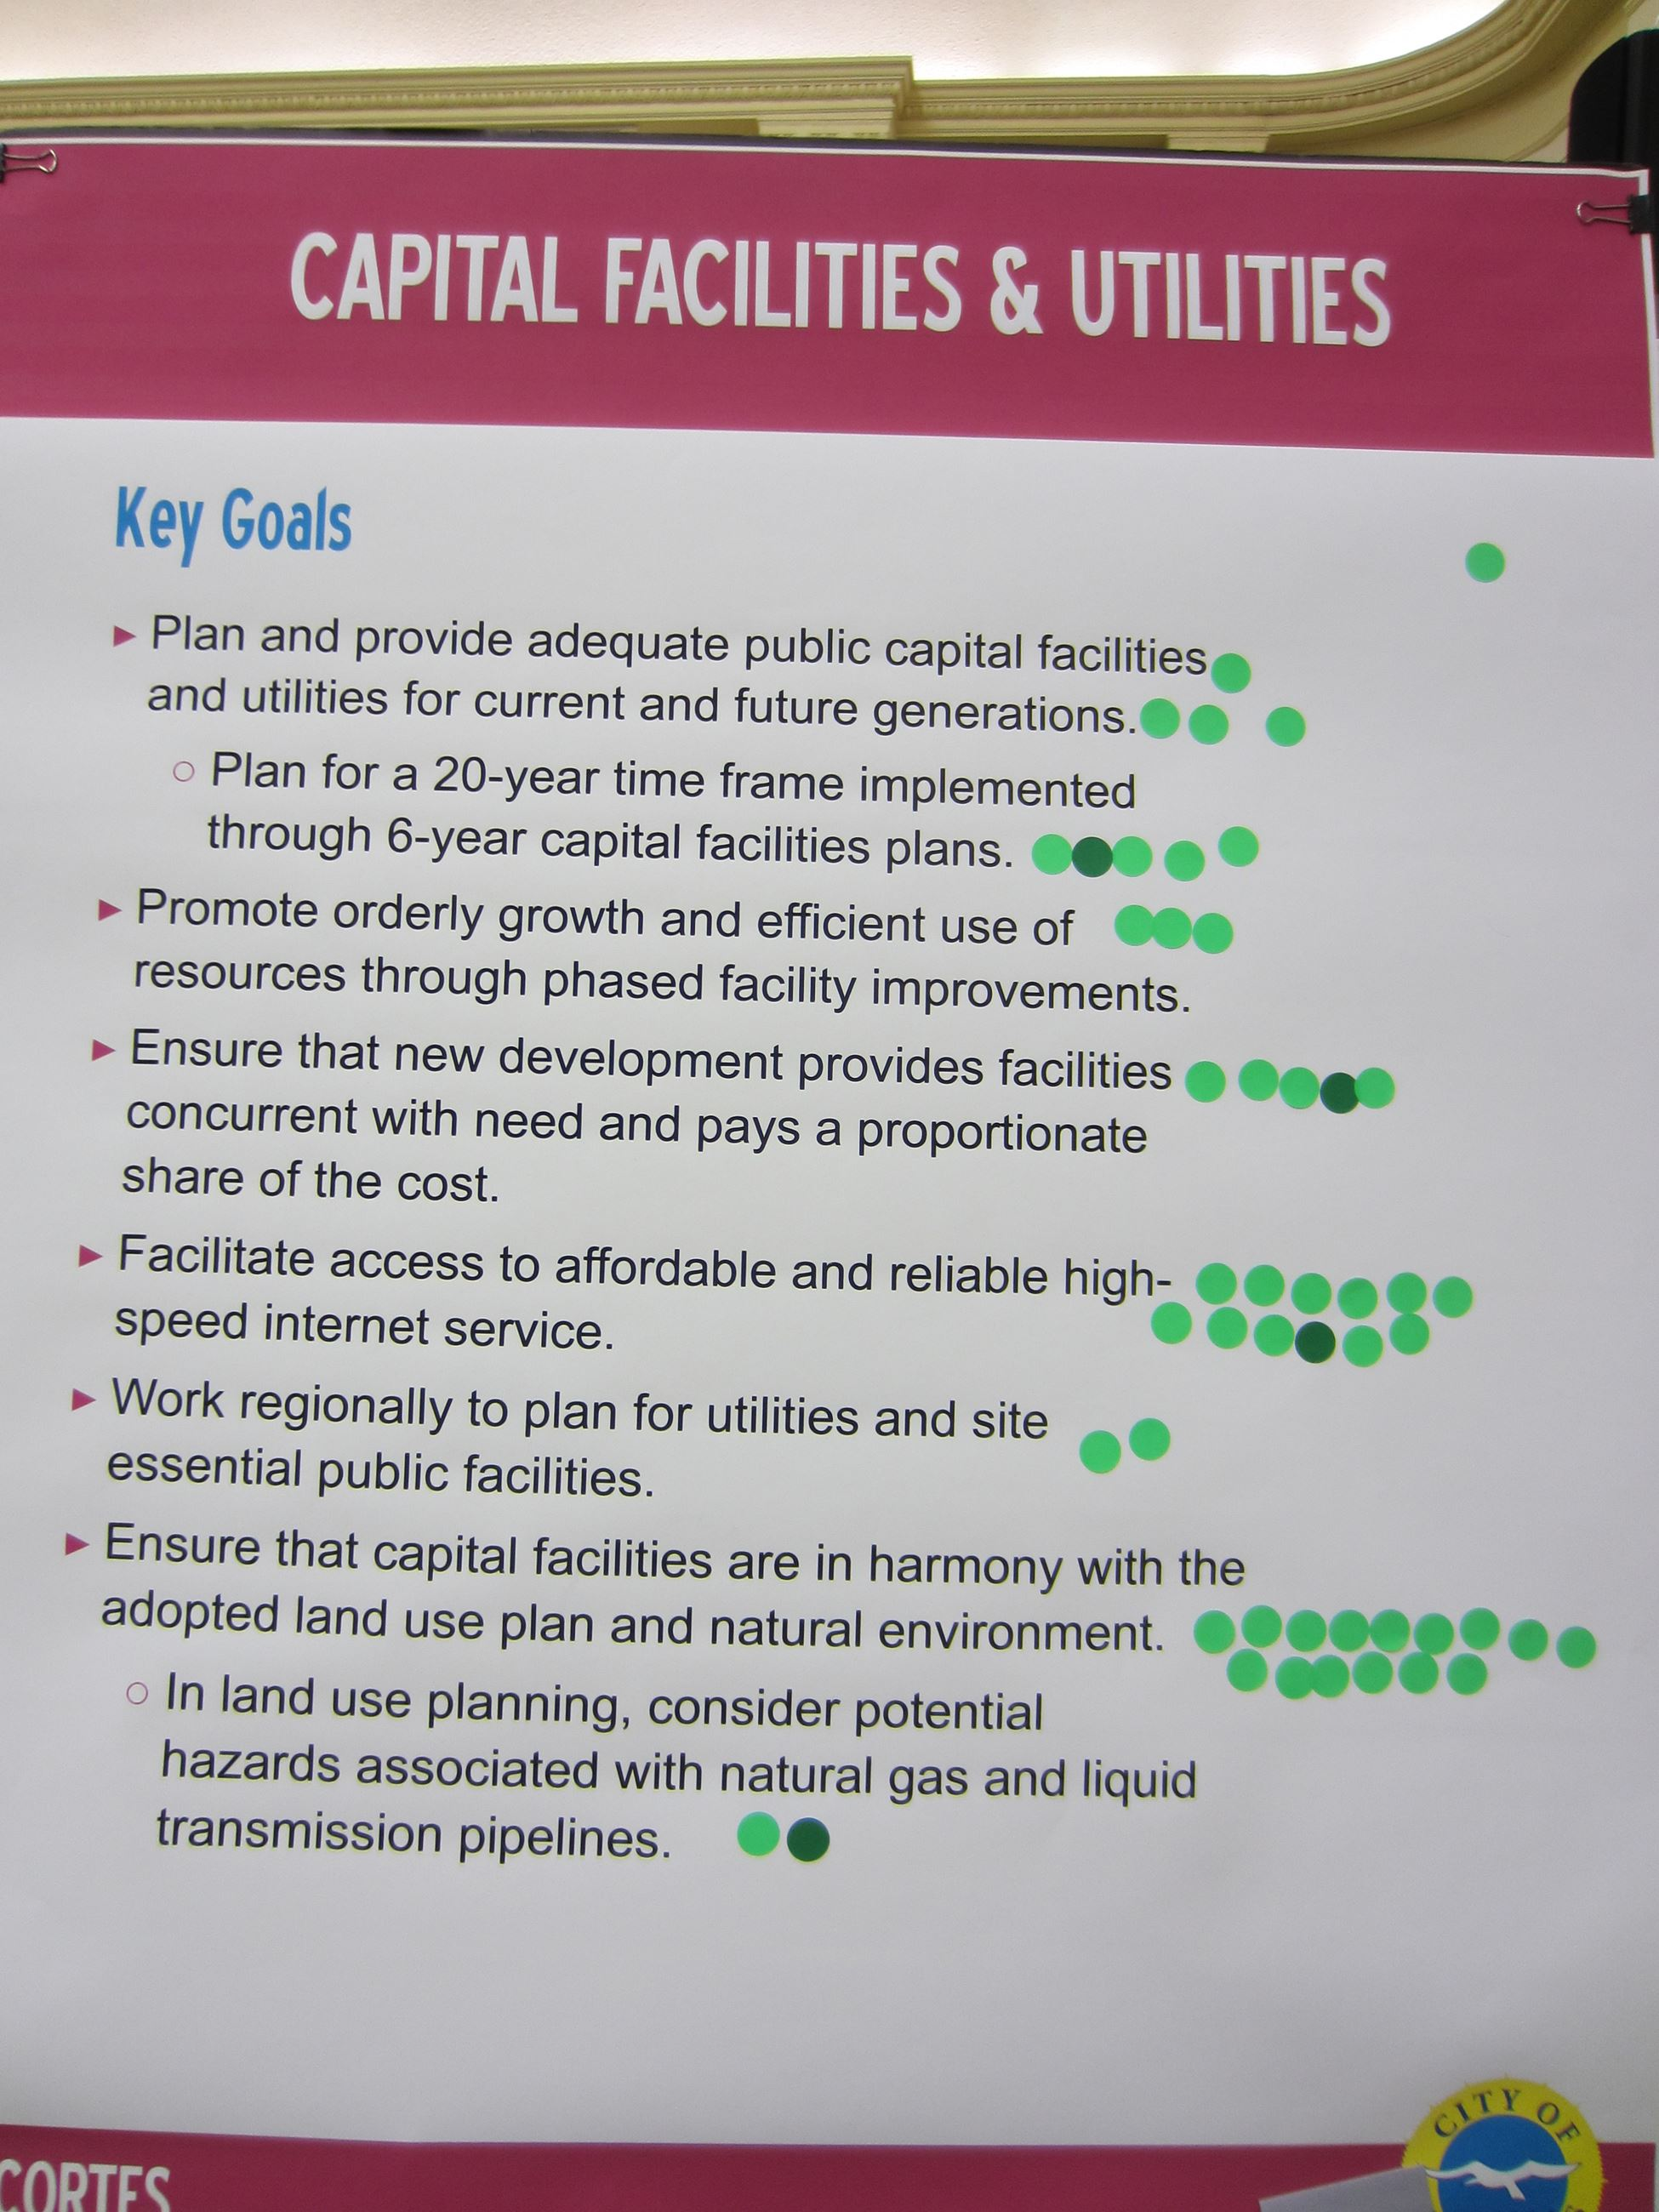 Capital Facilities and Utilities Key Goals